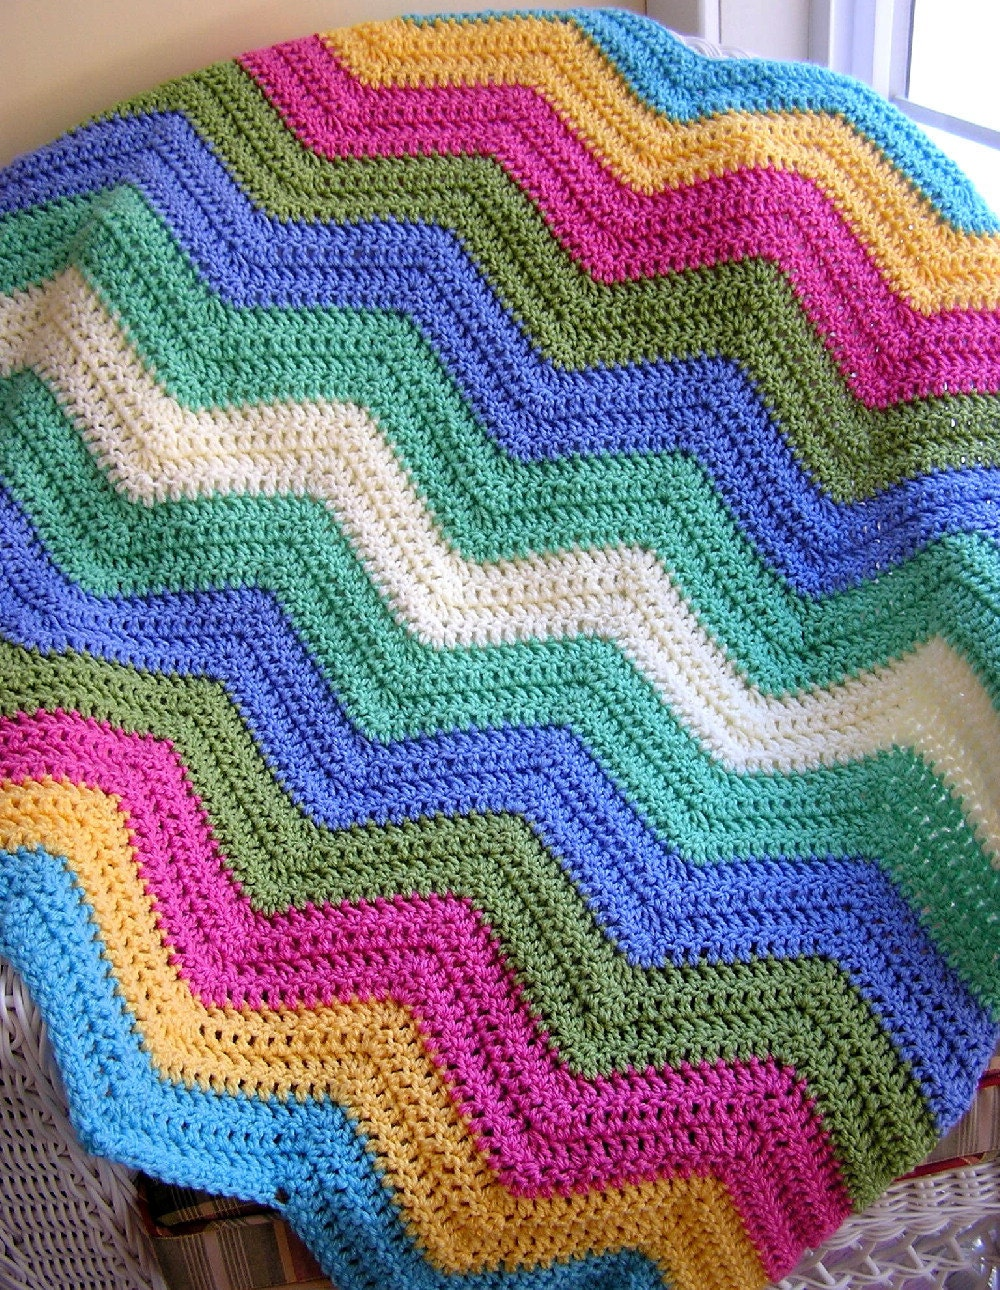 Knitted Zig Zag Afghan Pattern : chevron zig zag baby blanket afghan wrap by JDCrochetCreations